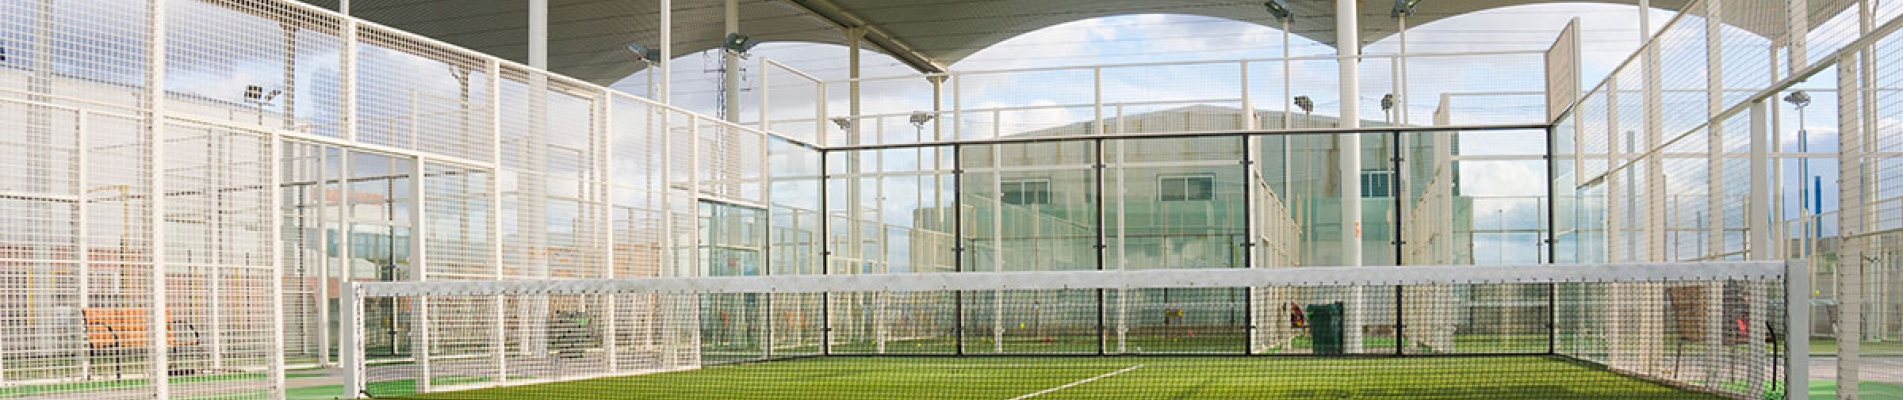 Paddle Tennis Court Construction Cost and Features